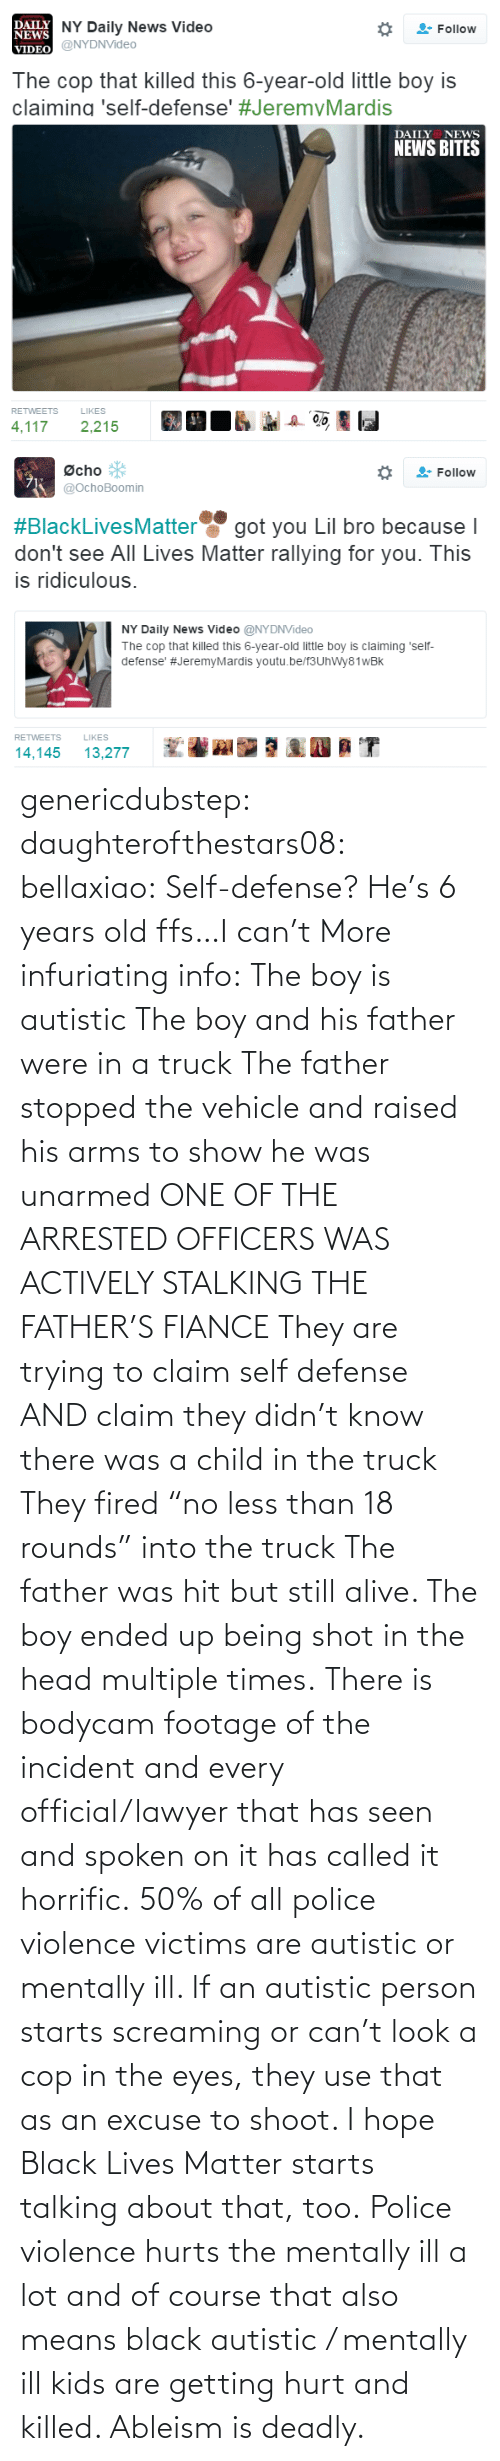 "child: genericdubstep: daughterofthestars08:  bellaxiao:  Self-defense? He's 6 years old ffs…I can't  More infuriating info: The boy is autistic The boy and his father were in a truck The father stopped the vehicle and raised his arms to show he was unarmed ONE OF THE ARRESTED OFFICERS WAS ACTIVELY STALKING THE FATHER'S FIANCE They are trying to claim self defense AND claim they didn't know there was a child in the truck They fired ""no less than 18 rounds"" into the truck The father was hit but still alive. The boy ended up being shot in the head multiple times. There is bodycam footage of the incident and every official/lawyer that has seen and spoken on it has called it horrific.  50% of all police violence victims are autistic or mentally ill. If an autistic person starts screaming or can't look a cop in the eyes, they use that as an excuse to shoot. I hope Black Lives Matter starts talking about that, too. Police violence hurts the mentally ill a lot and of course that also means black autistic / mentally ill kids are getting hurt and killed. Ableism is deadly."